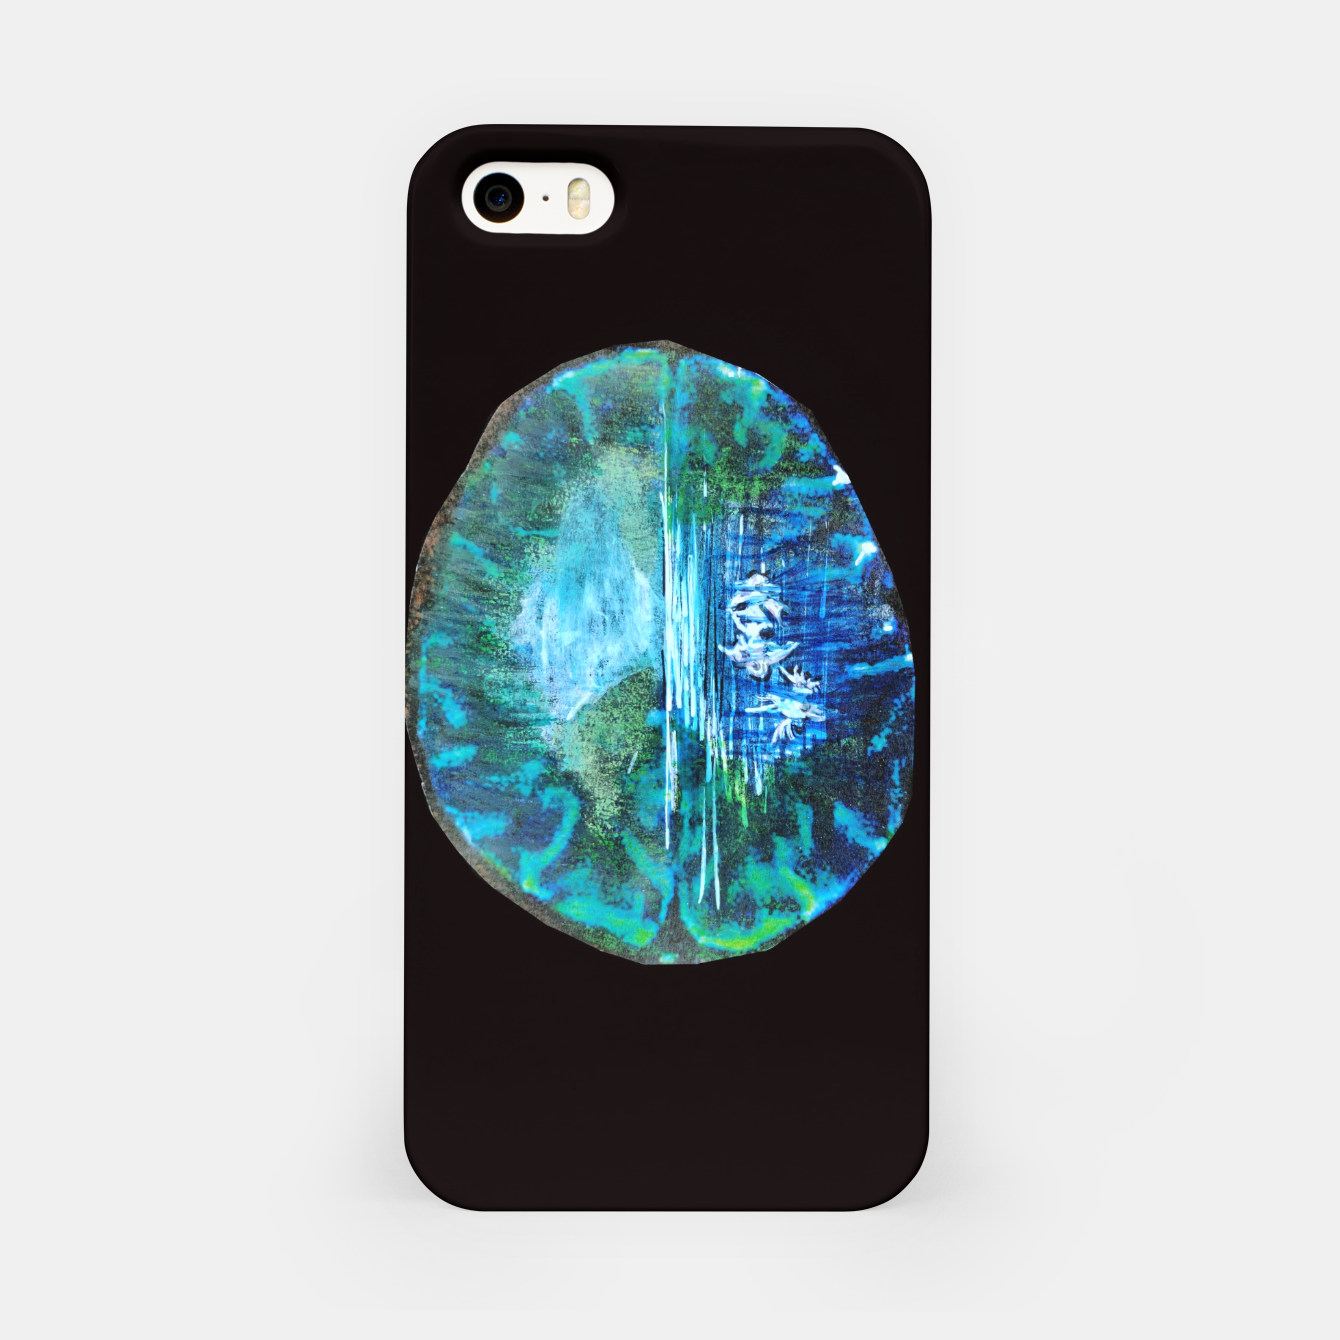 Image of lost and found world brain art for paratissima 19 Yulia A Korneva mri immage iPhone Case - Live Heroes